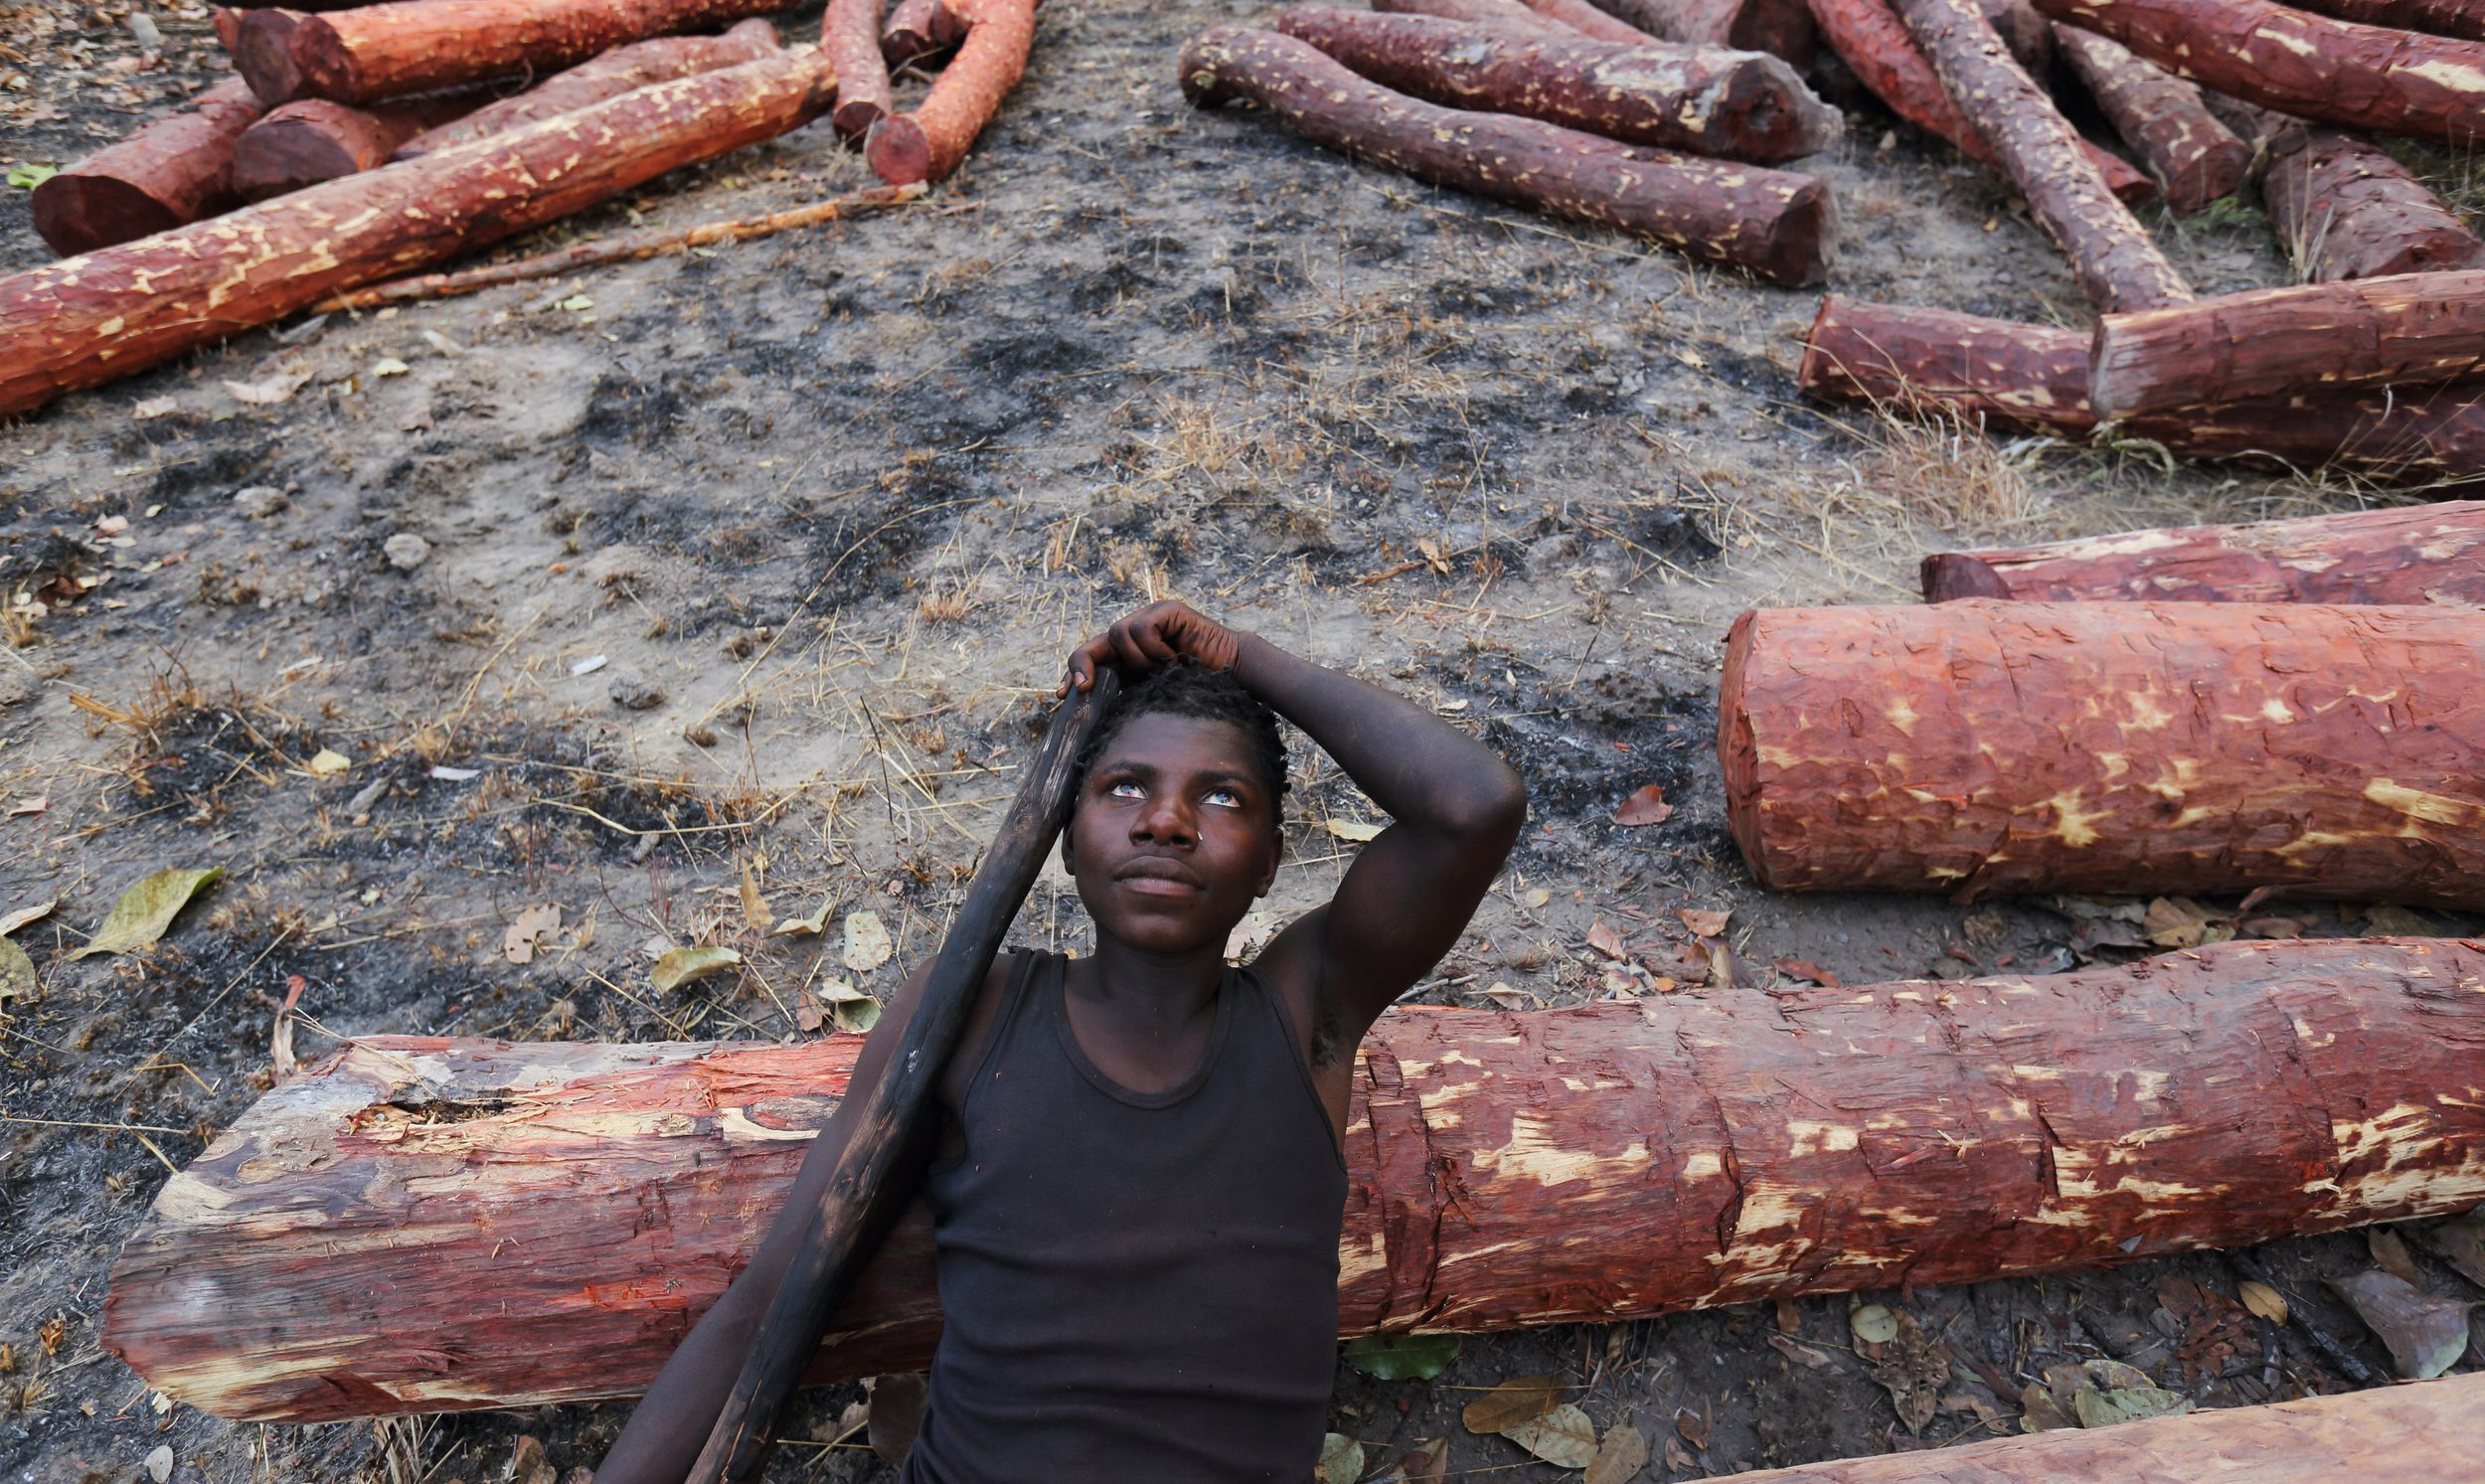 A logger in Katanga province in the Democratic Republic of Congo rests.